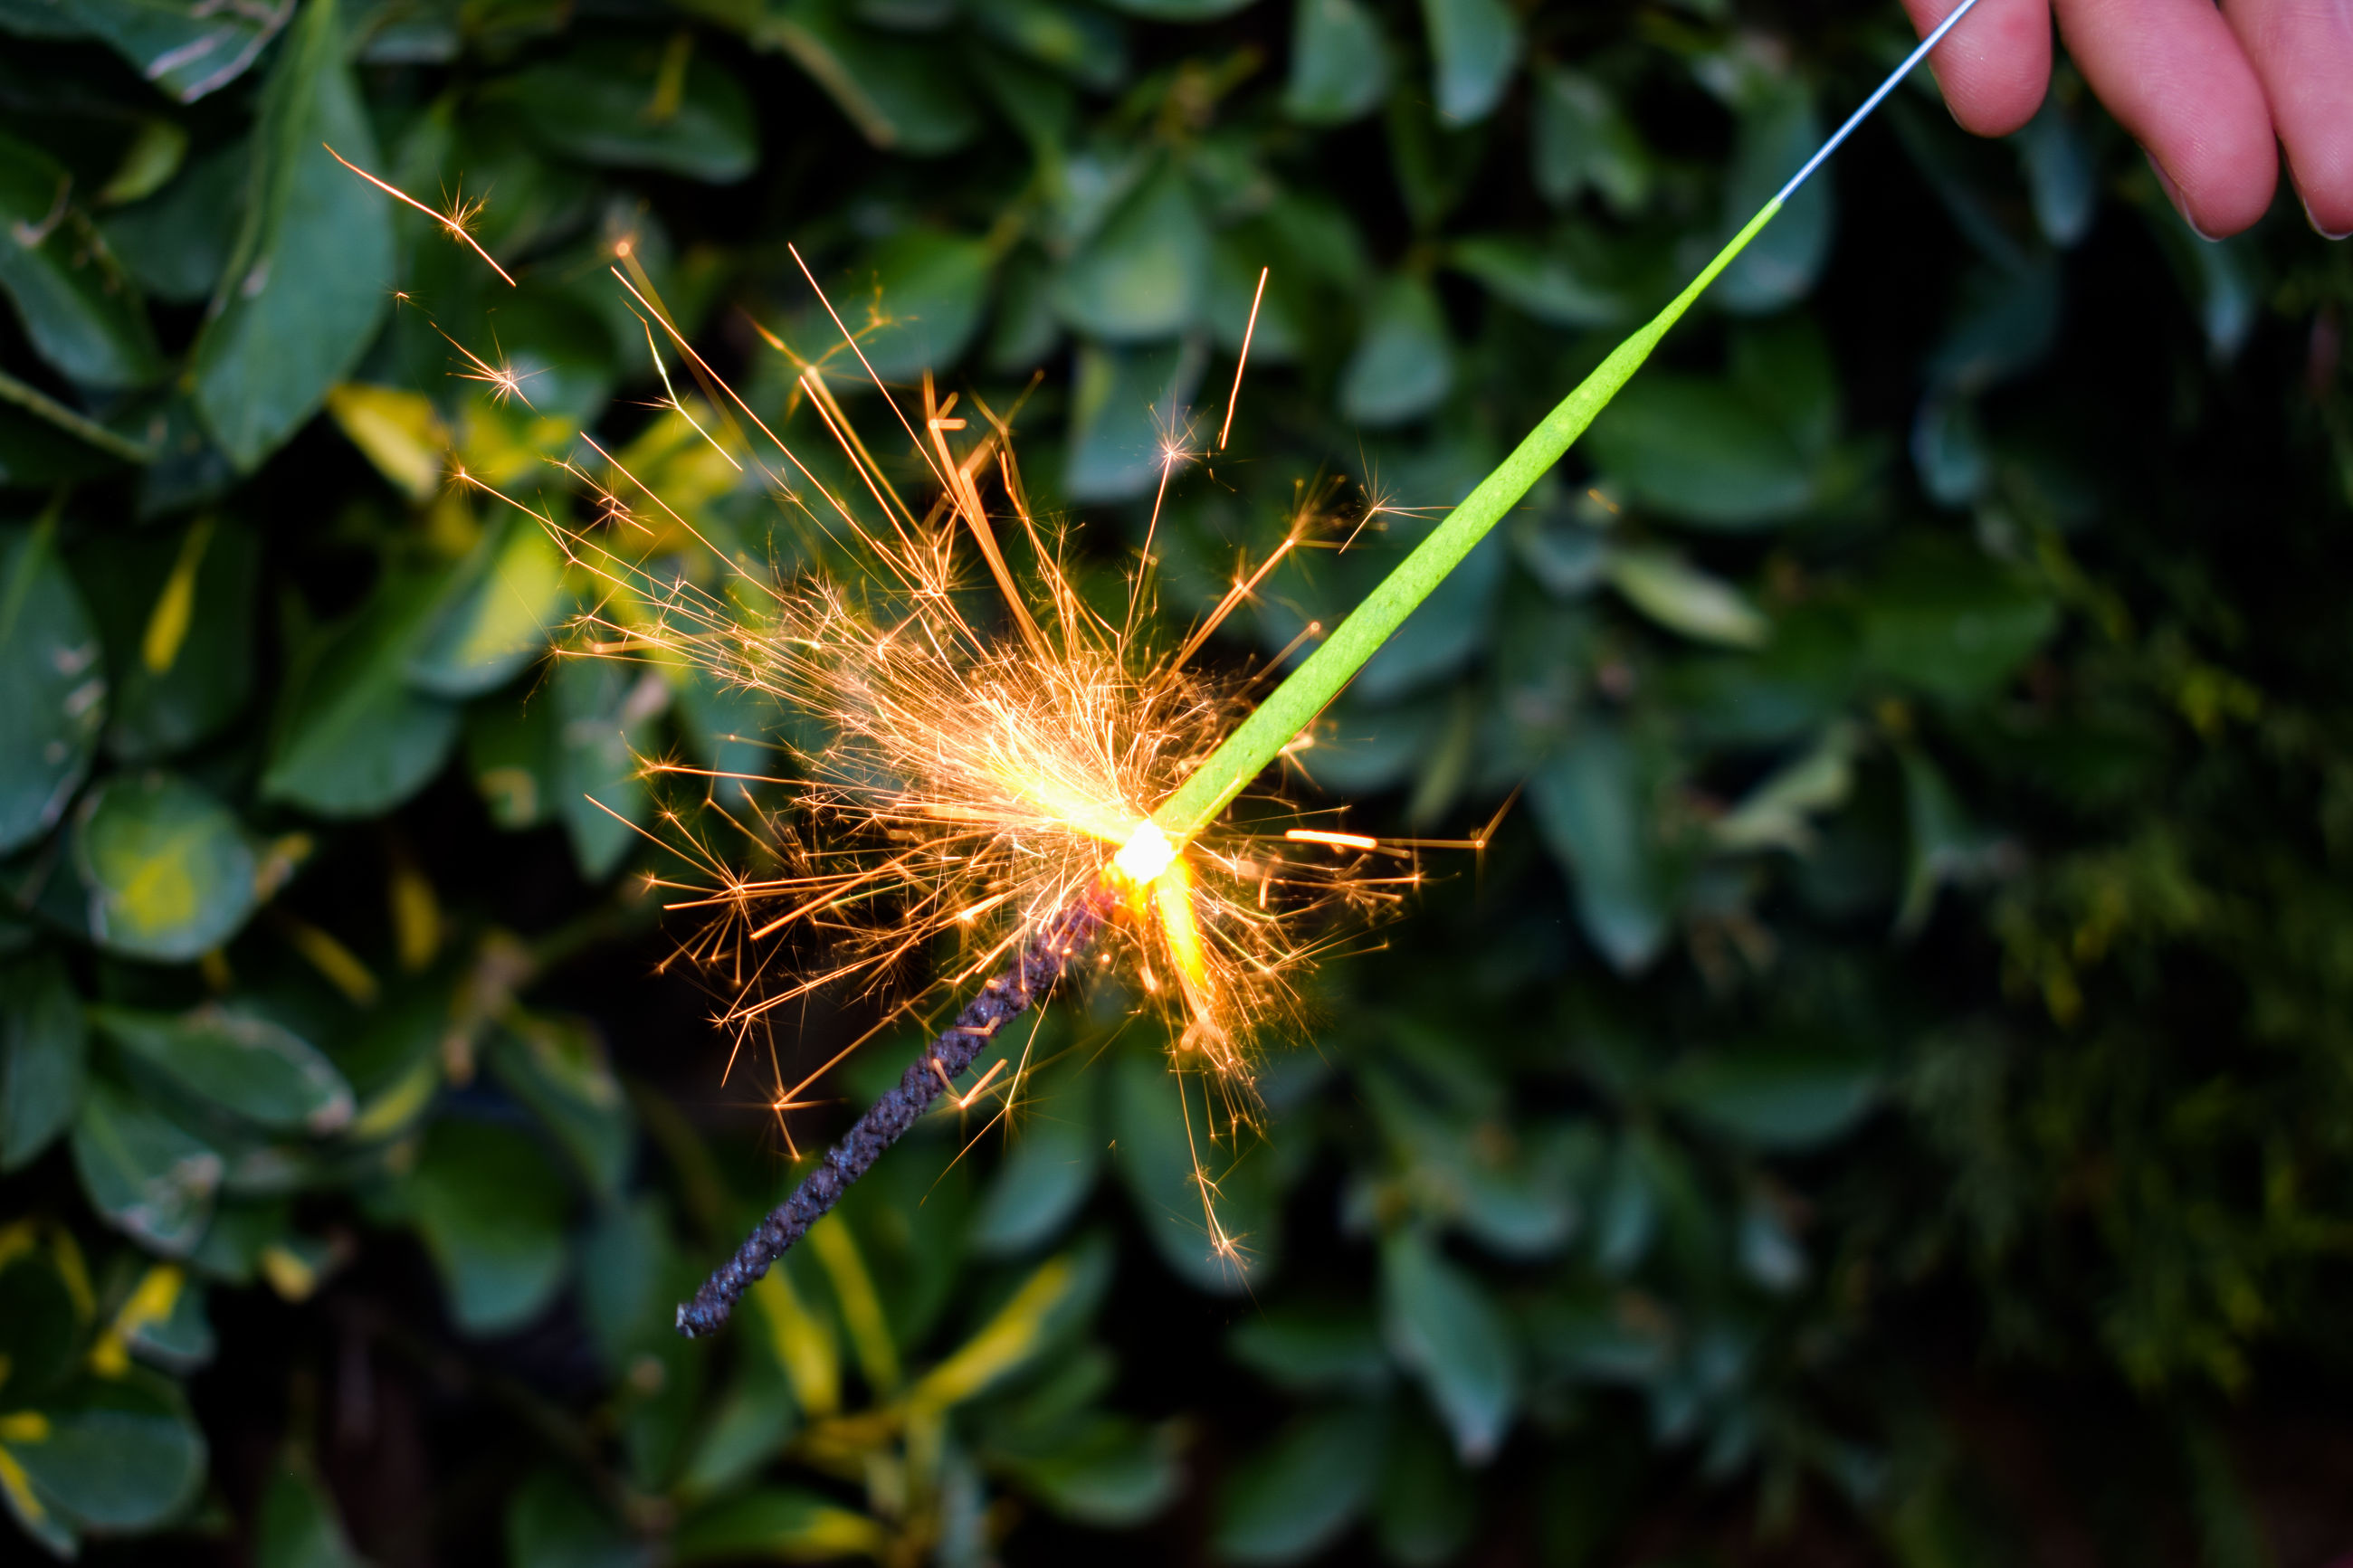 human hand, one person, real people, holding, sparkler, outdoors, focus on foreground, motion, firework - man made object, long exposure, human body part, close-up, day, people